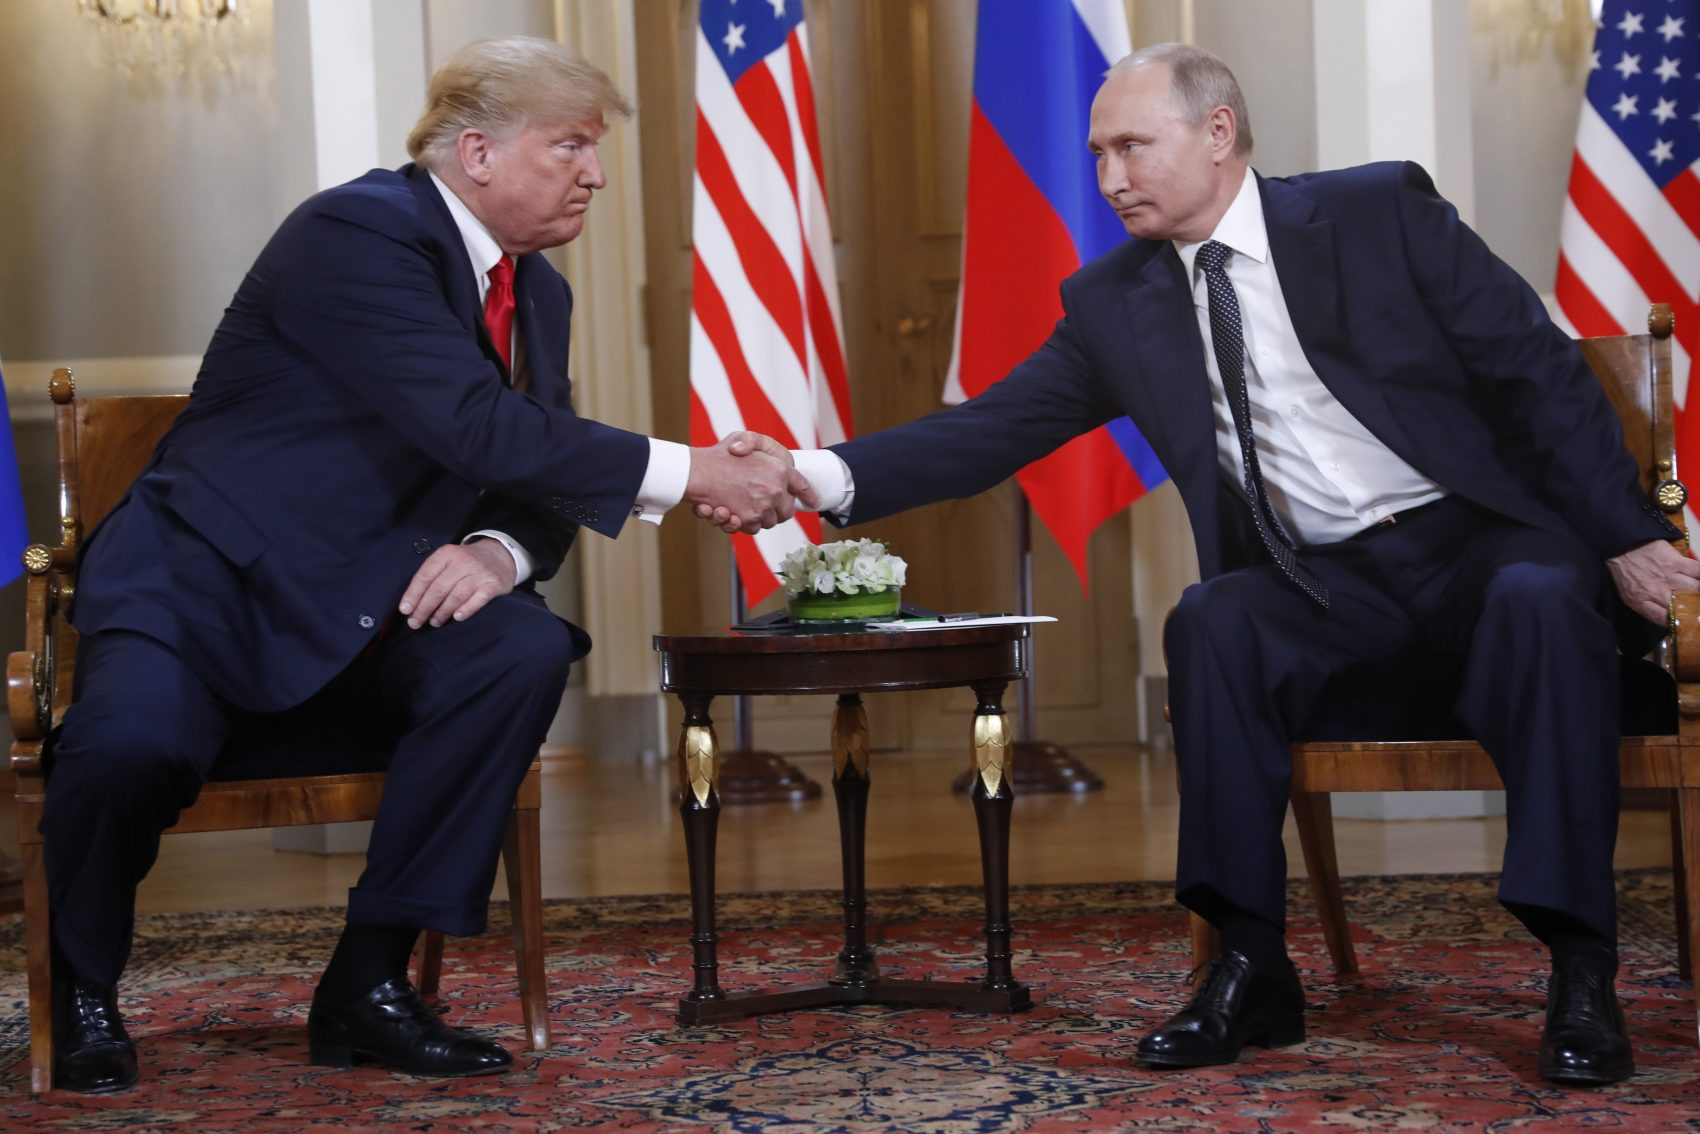 U.S. President Donald Trump, left, and Russian President Vladimir Putin shake hand at the beginning of a meeting at the Presidential Palace in Helsinki, Finland, Monday, July 16, 2018. (Pablo Martinez Monsivais/AP)